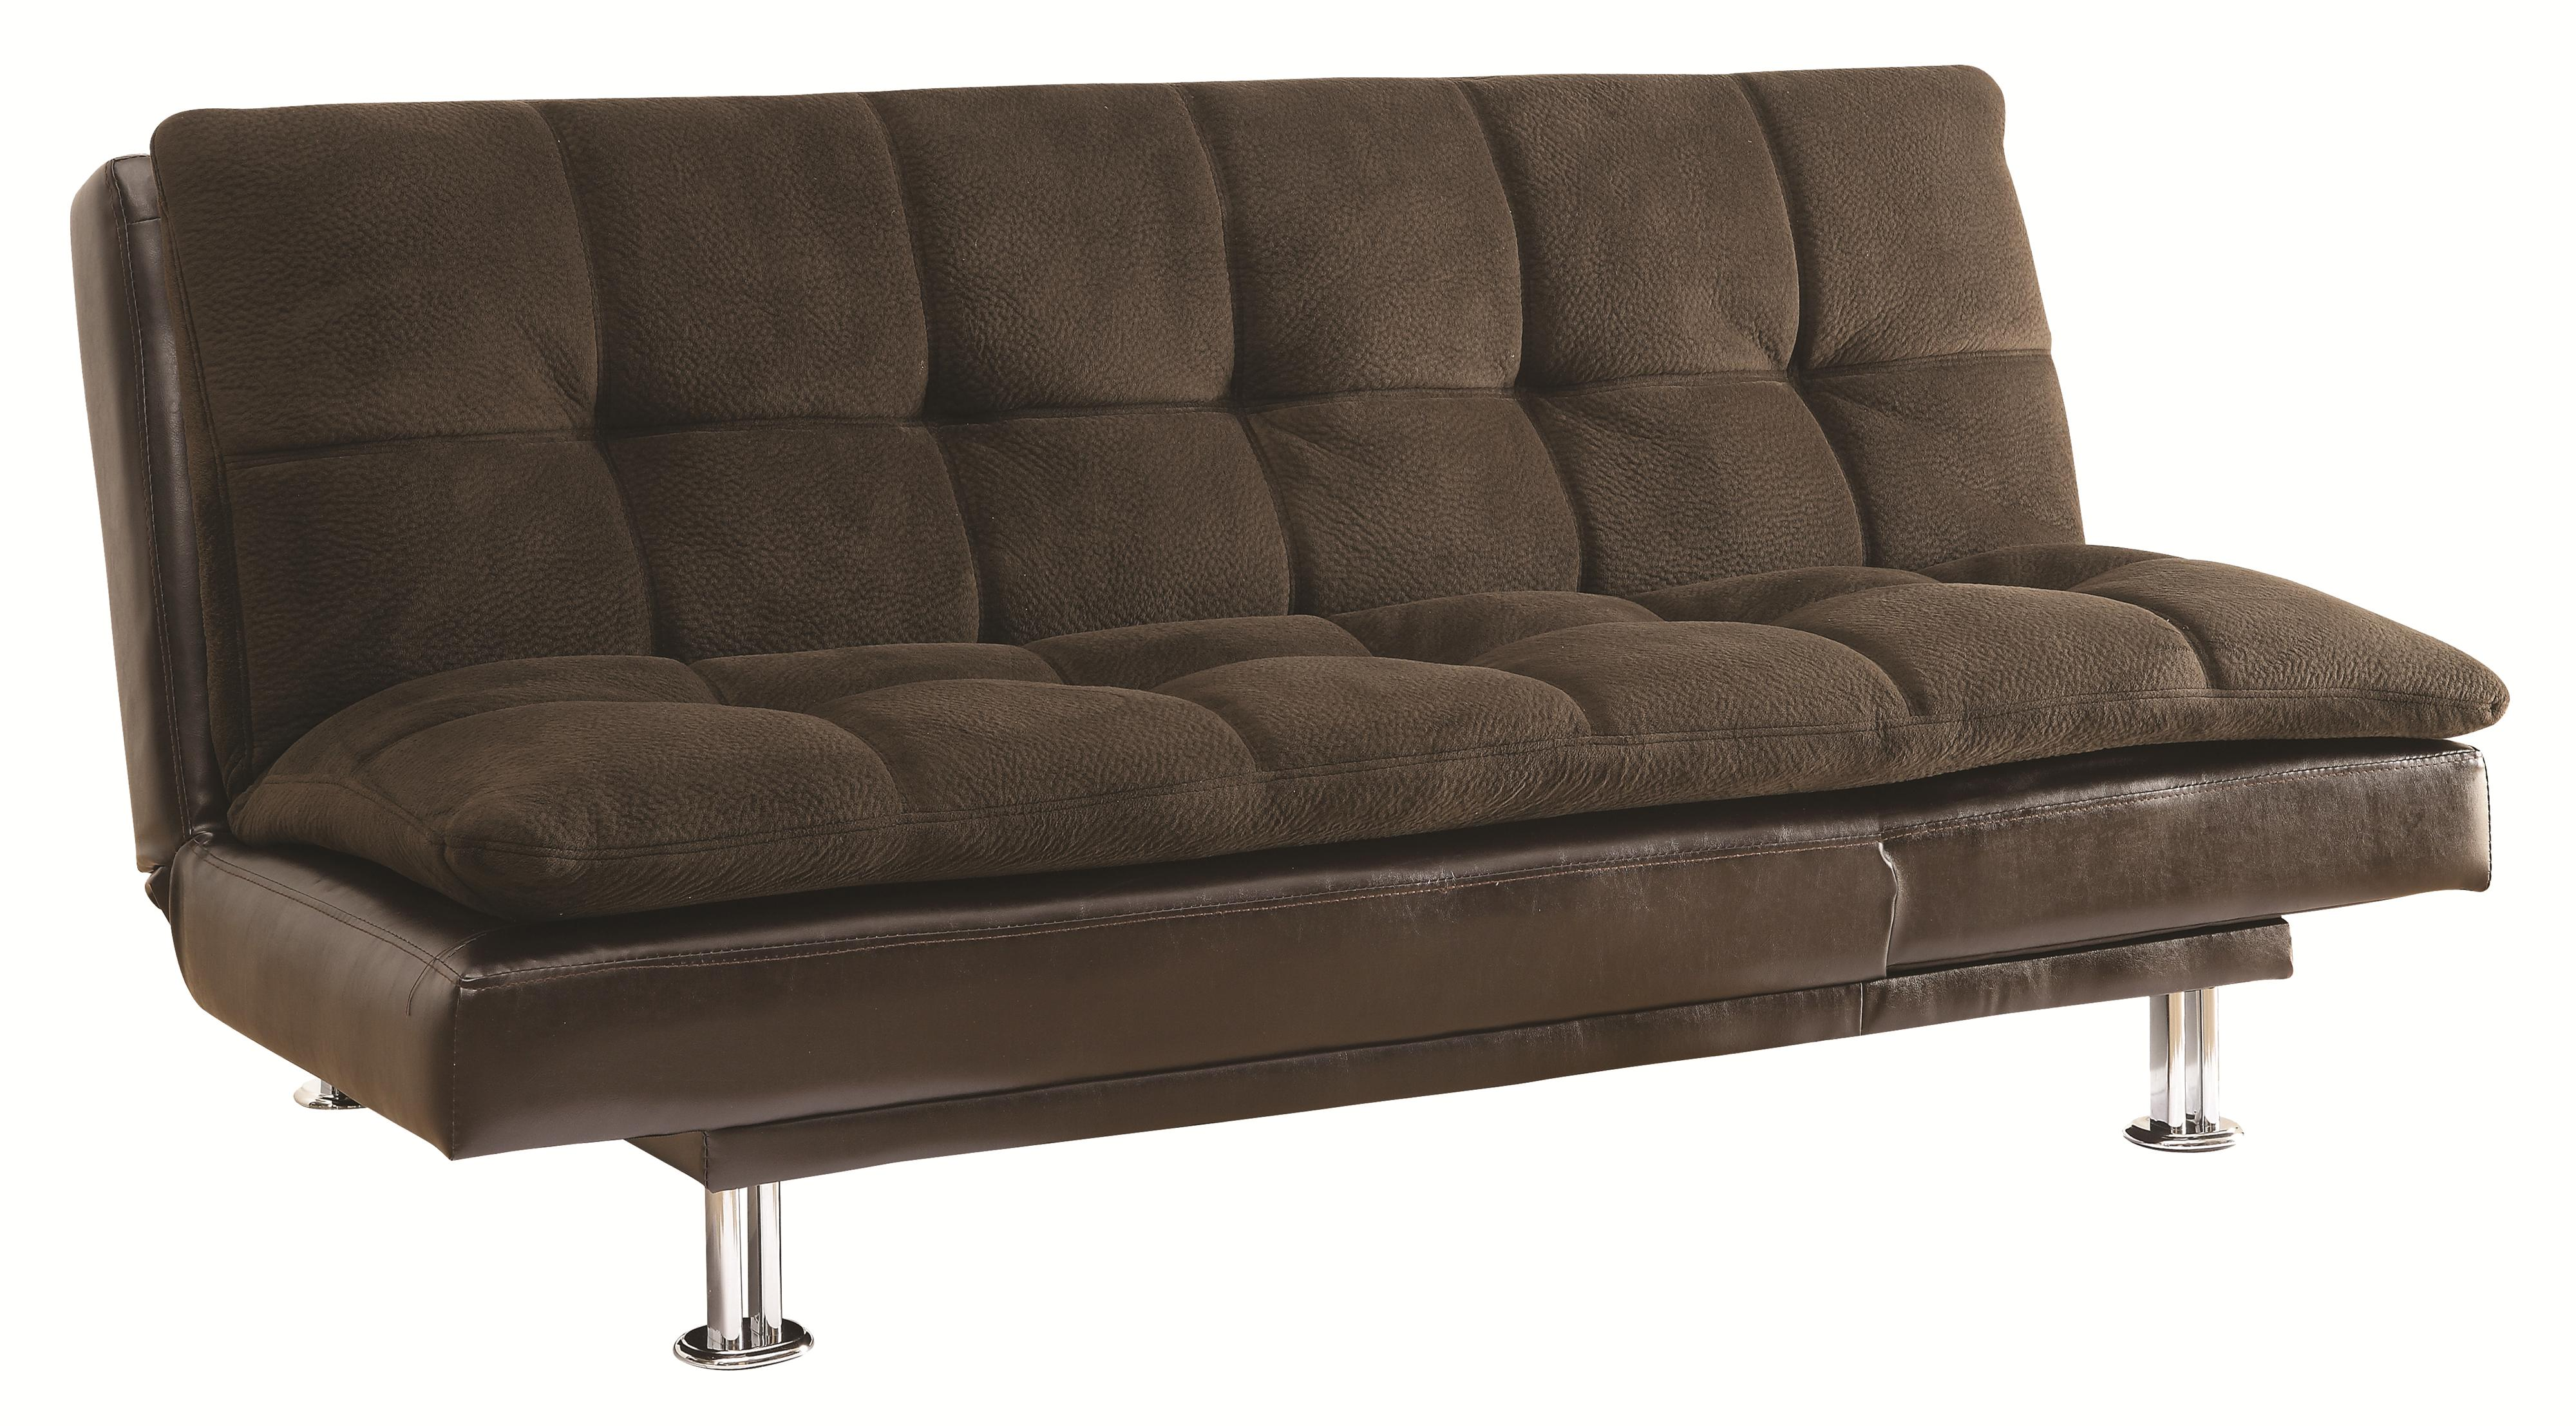 Coaster Sofa Beds and Futons -  Millie Sofa Bed - Item Number: 300313